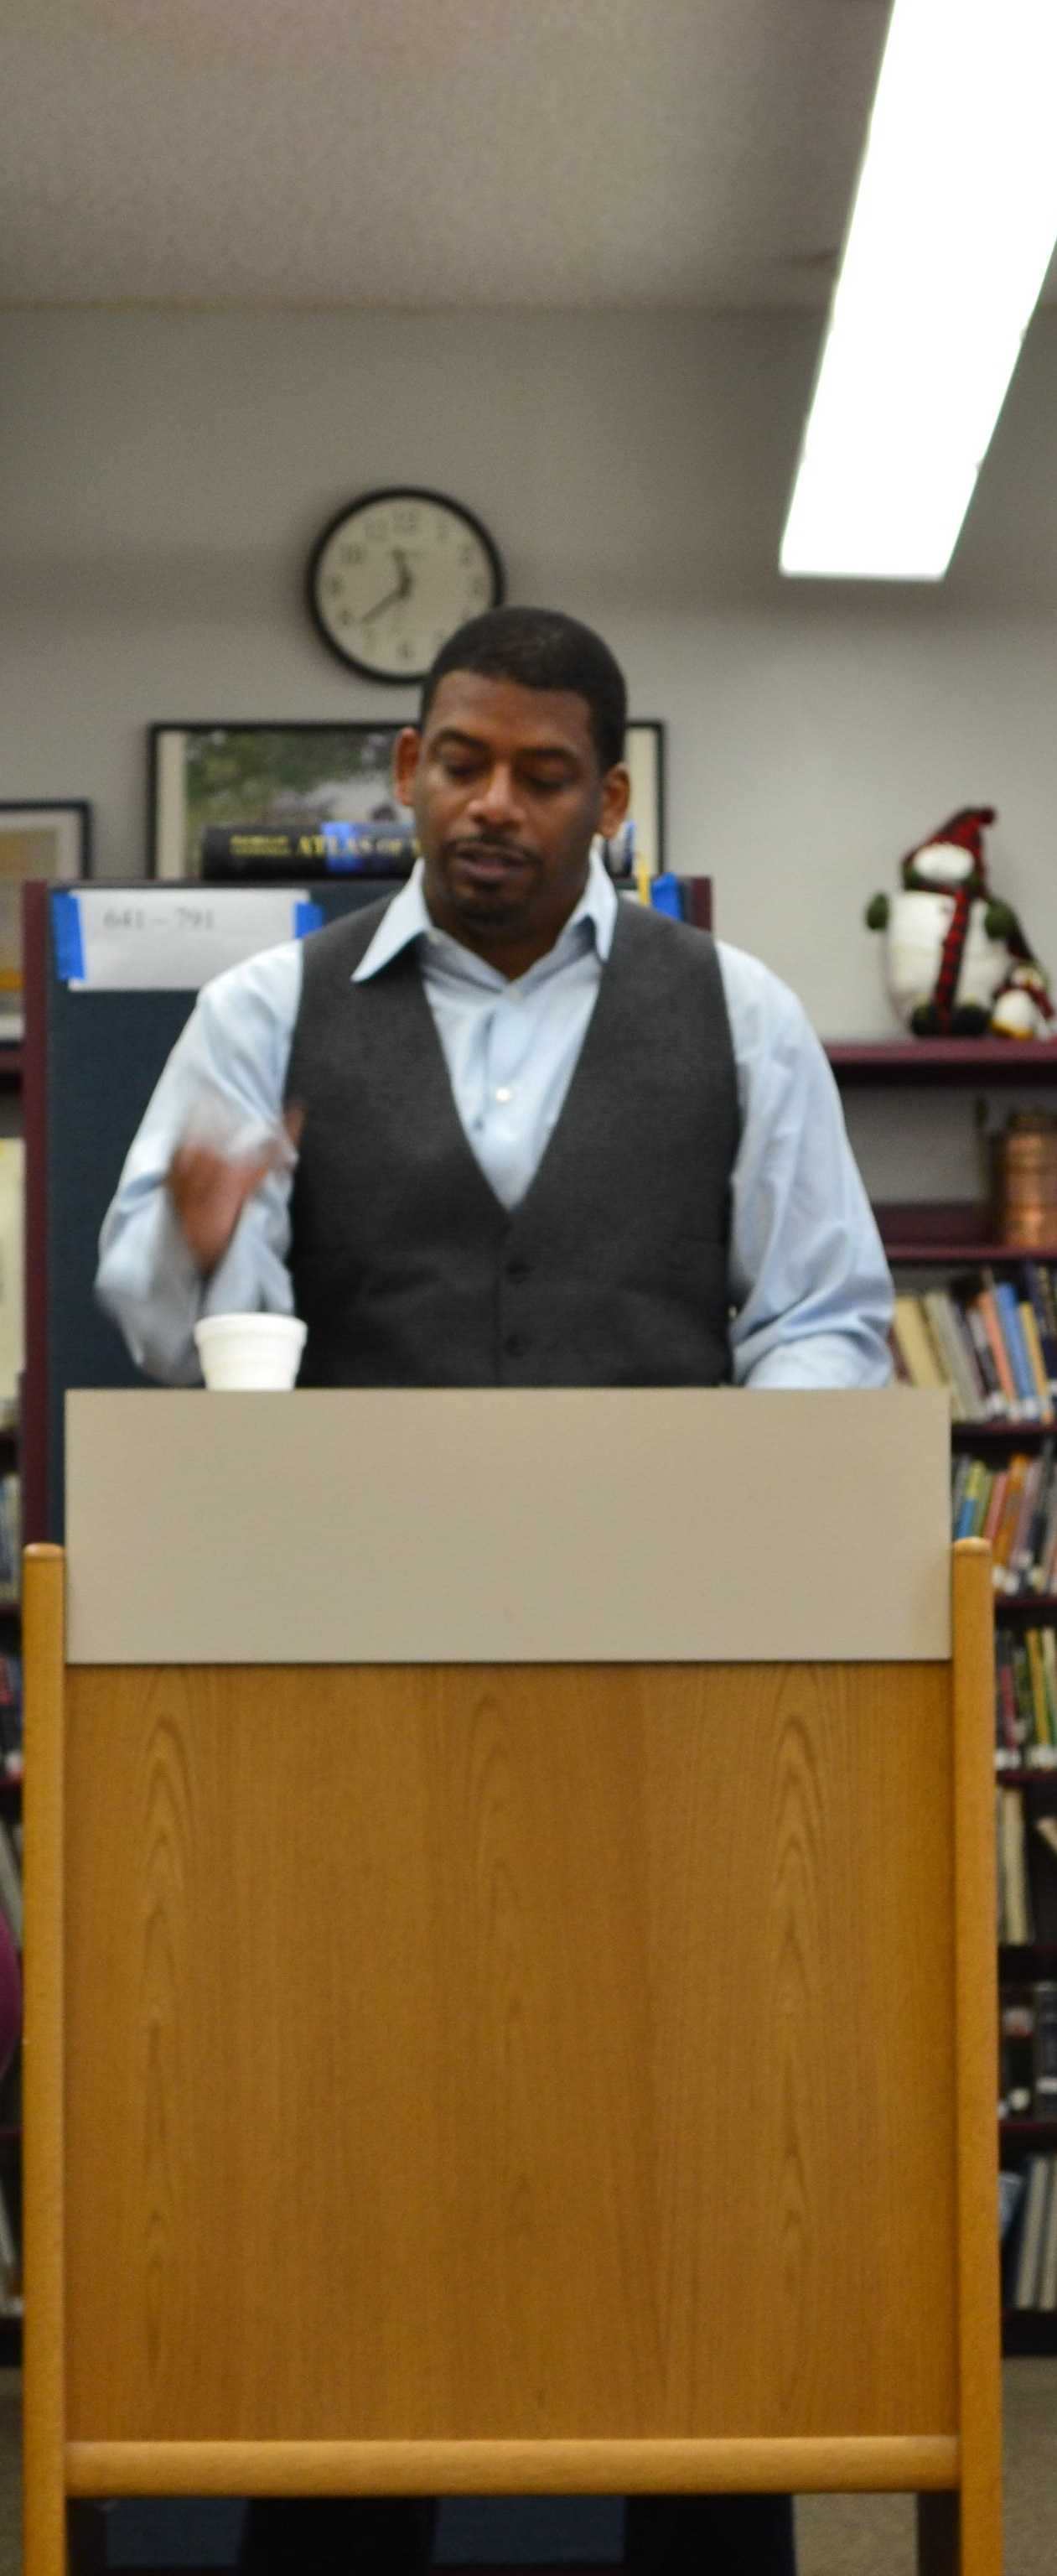 A. Van Jordan reading his poetry in the media center.